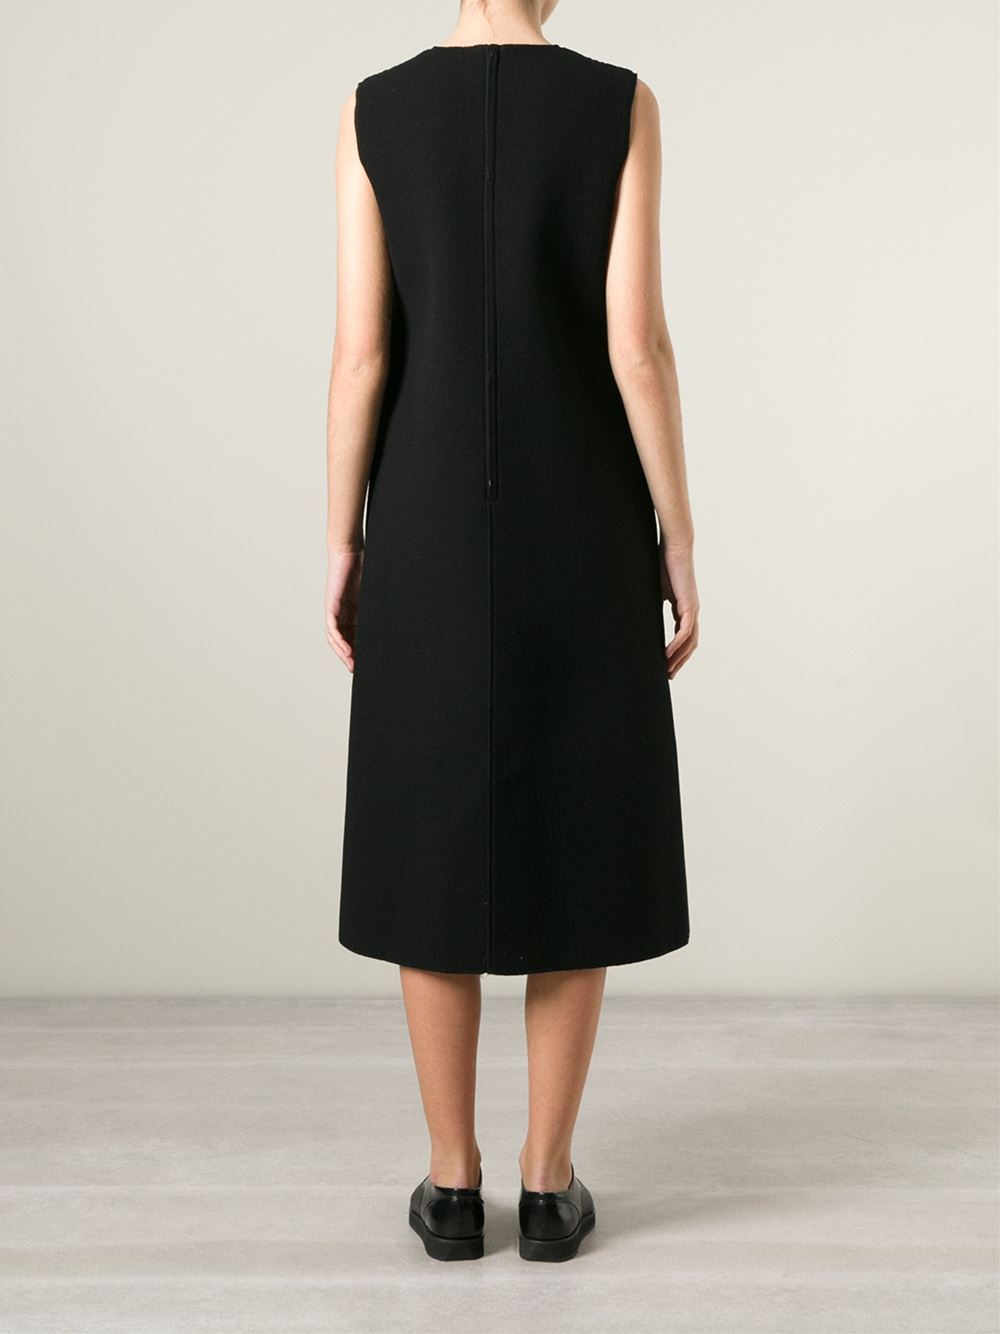 Comme des gar ons 39 robe de chambre 39 padded dress in black for Robe de chambre seculo xix